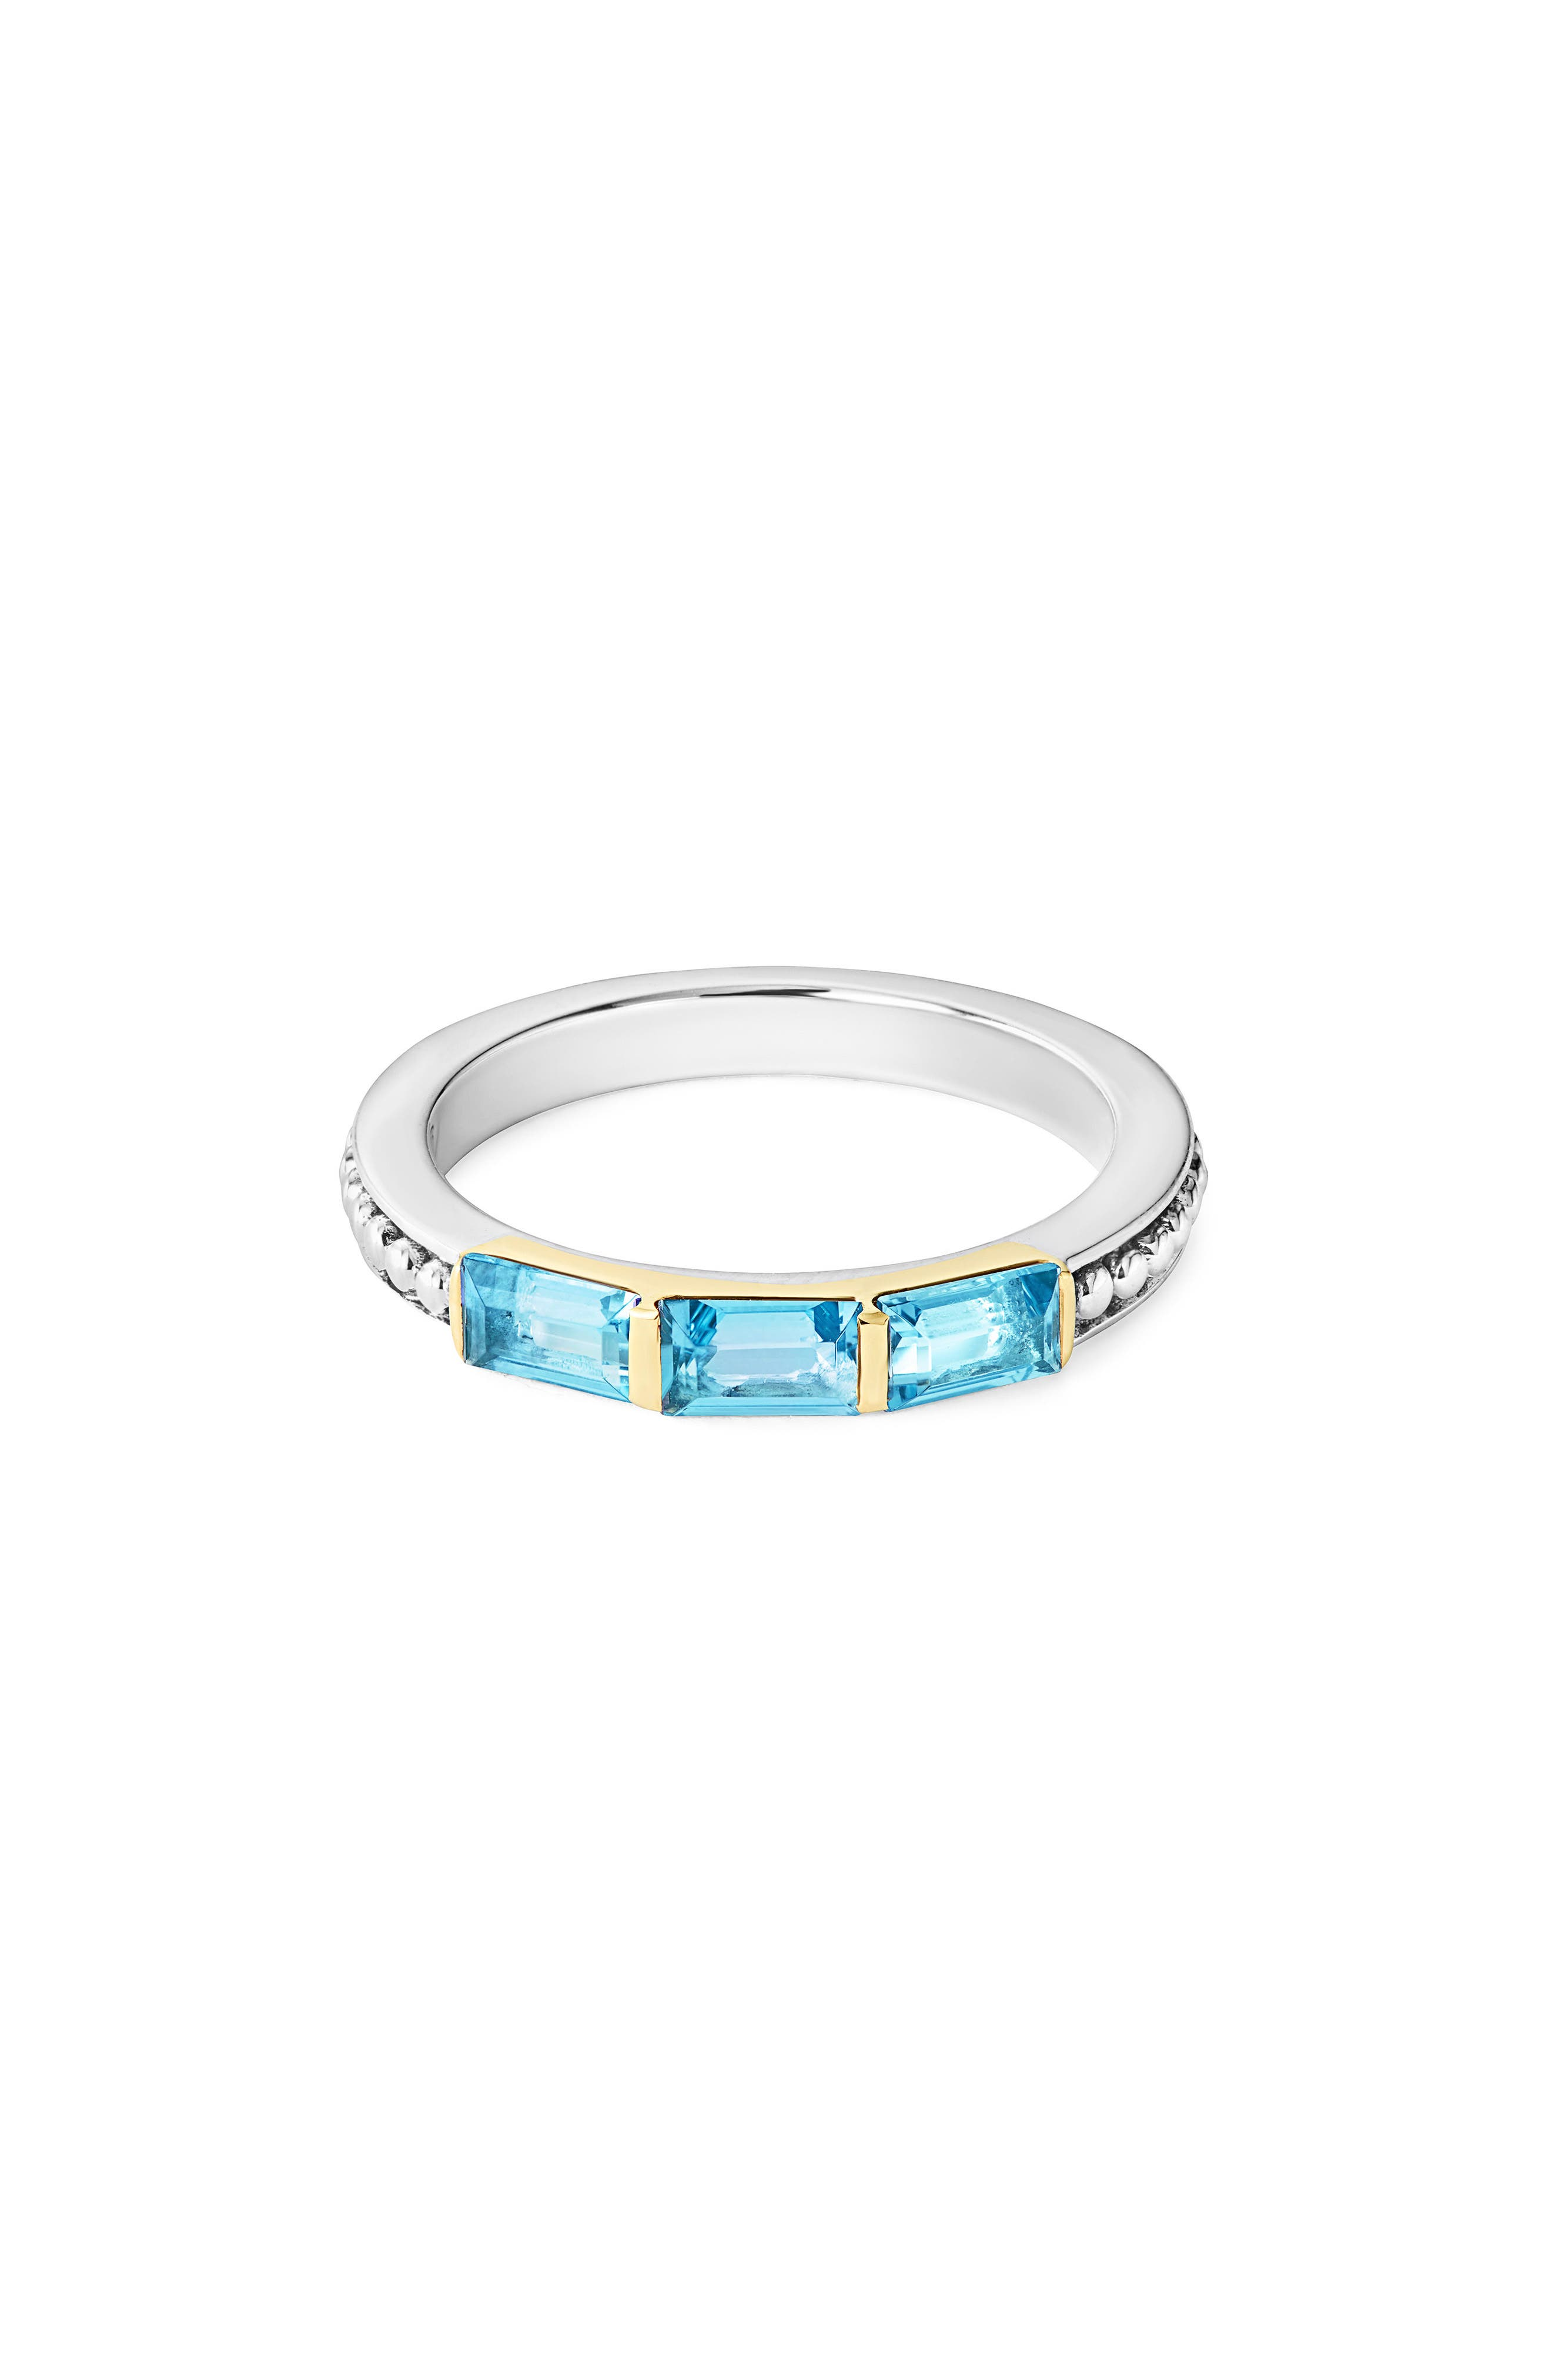 Gemstone Baguette Stackable Ring,                         Main,                         color, Silver/ 18K Gold/ Blue Topaz